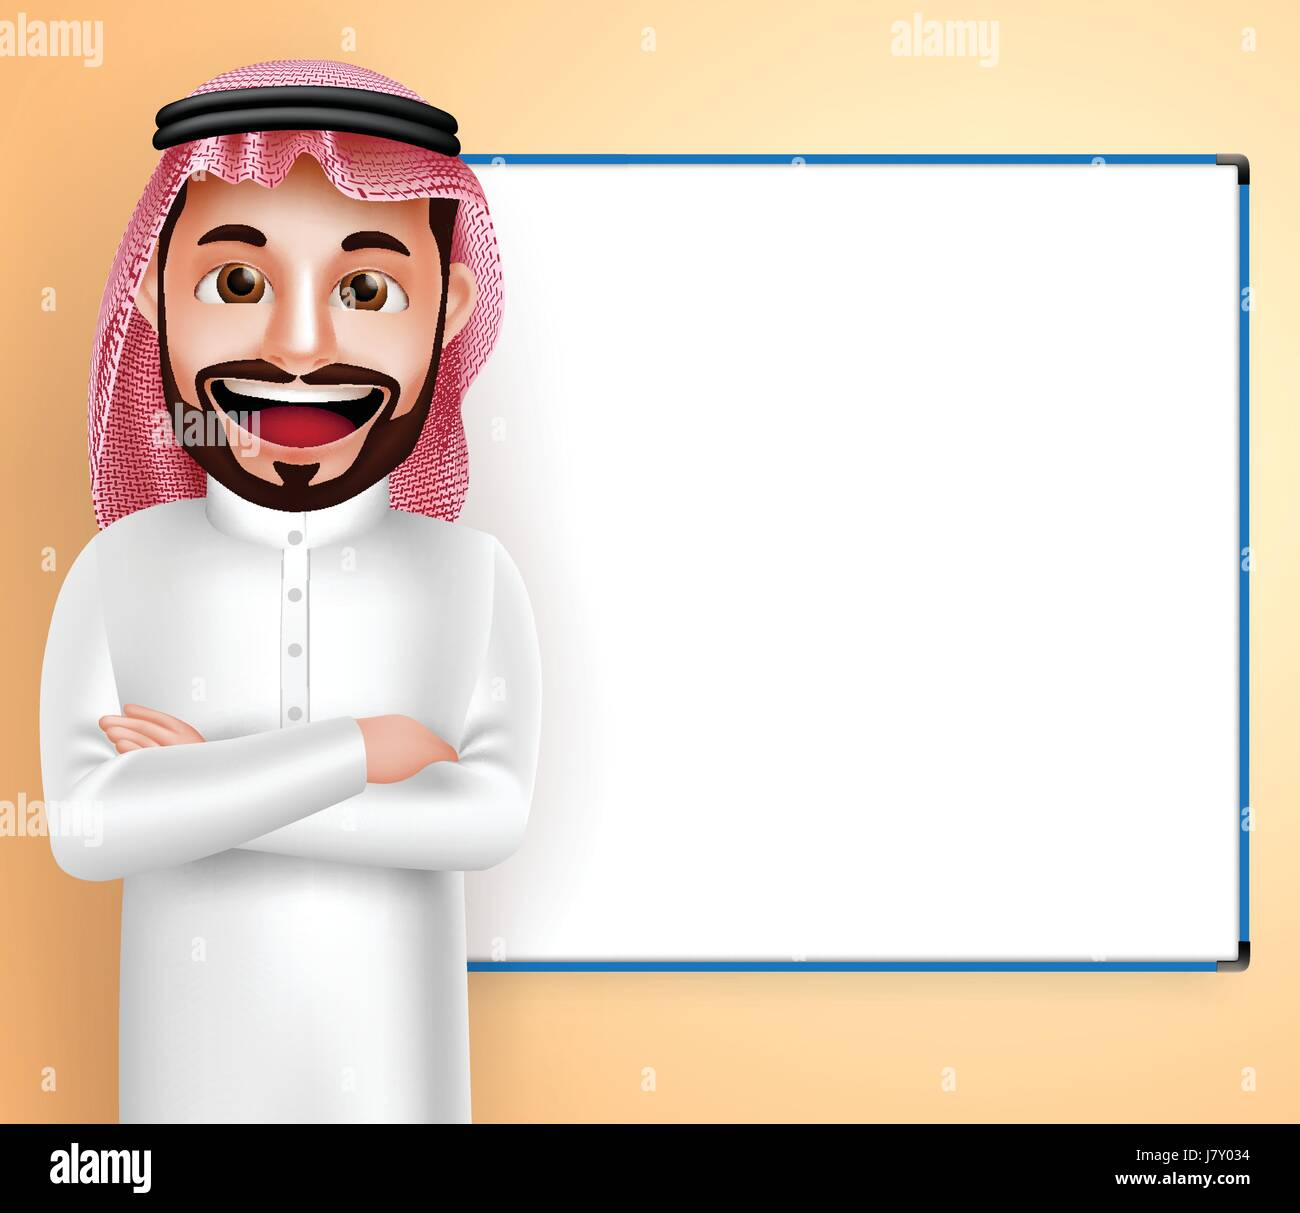 Saudi Arab man vector character wearing thobe speaking with blank white board in the background. Vector illustration. - Stock Image